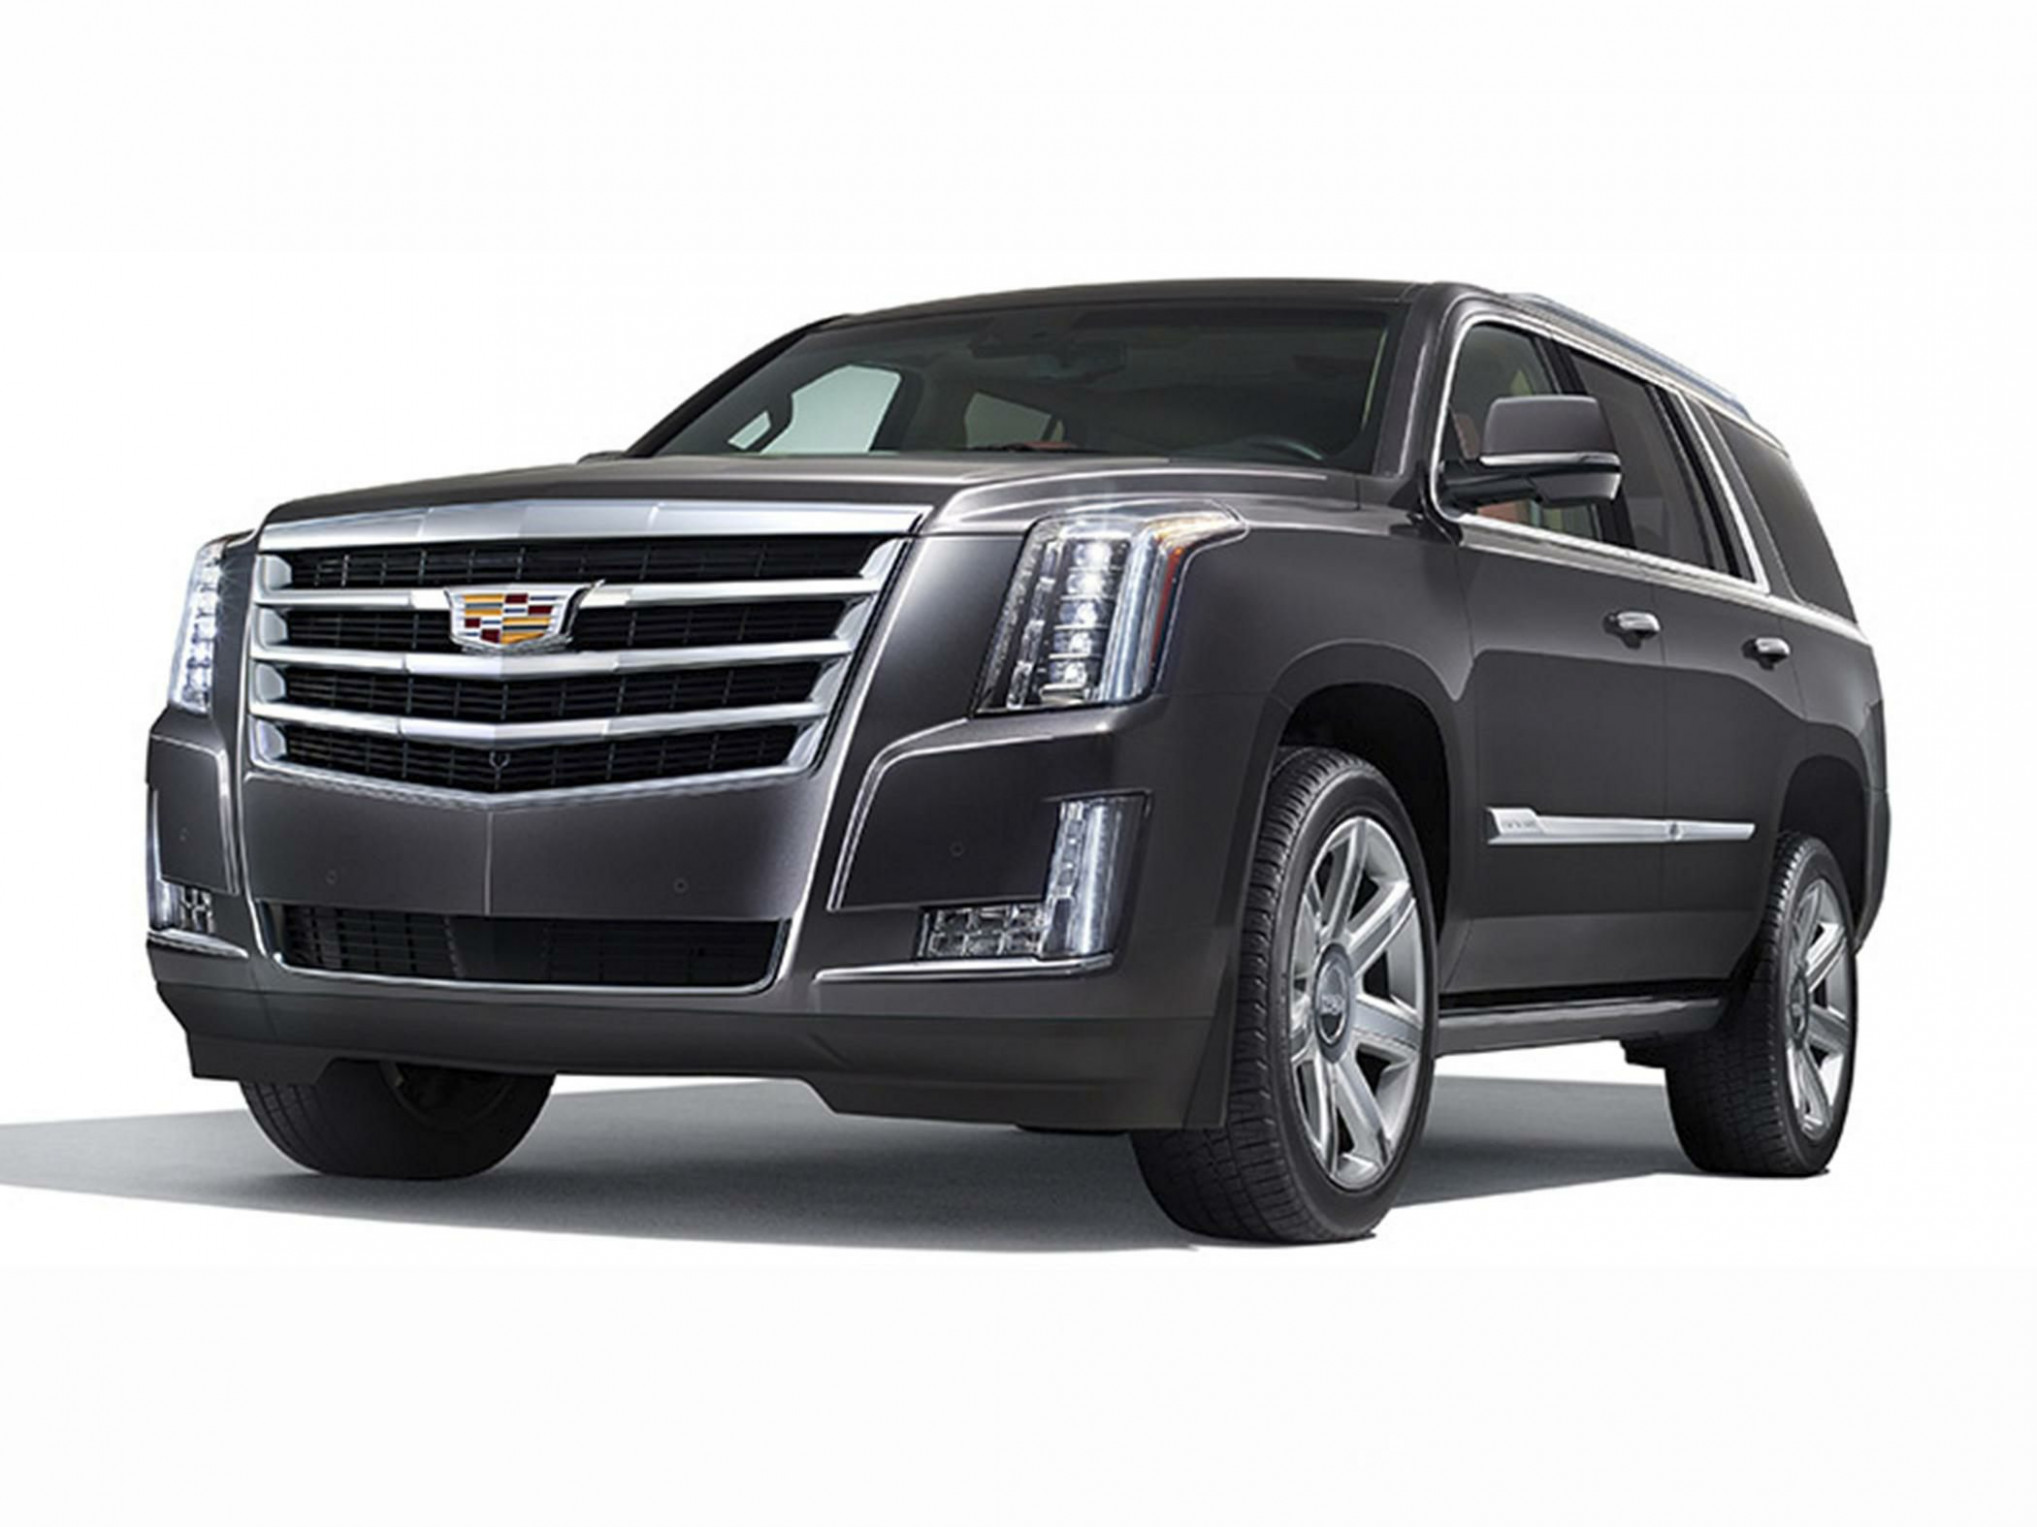 7 Cadillac Escalade Deals, Prices, Incentives & Leases ...